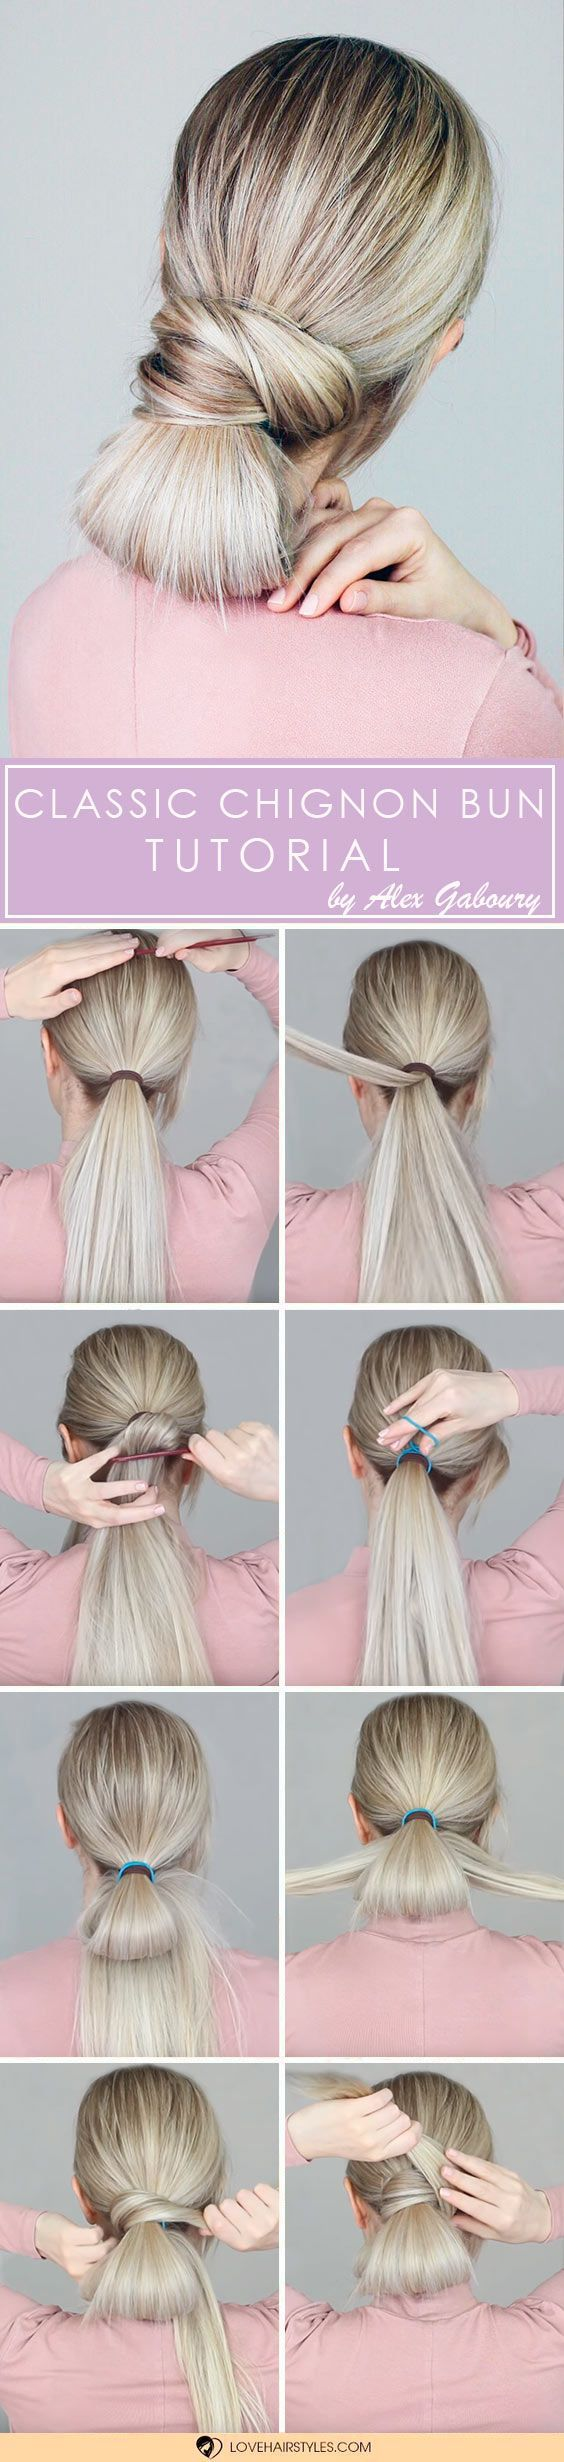 Discover Useful Tutorials On How To Put Your Hair In A Bun